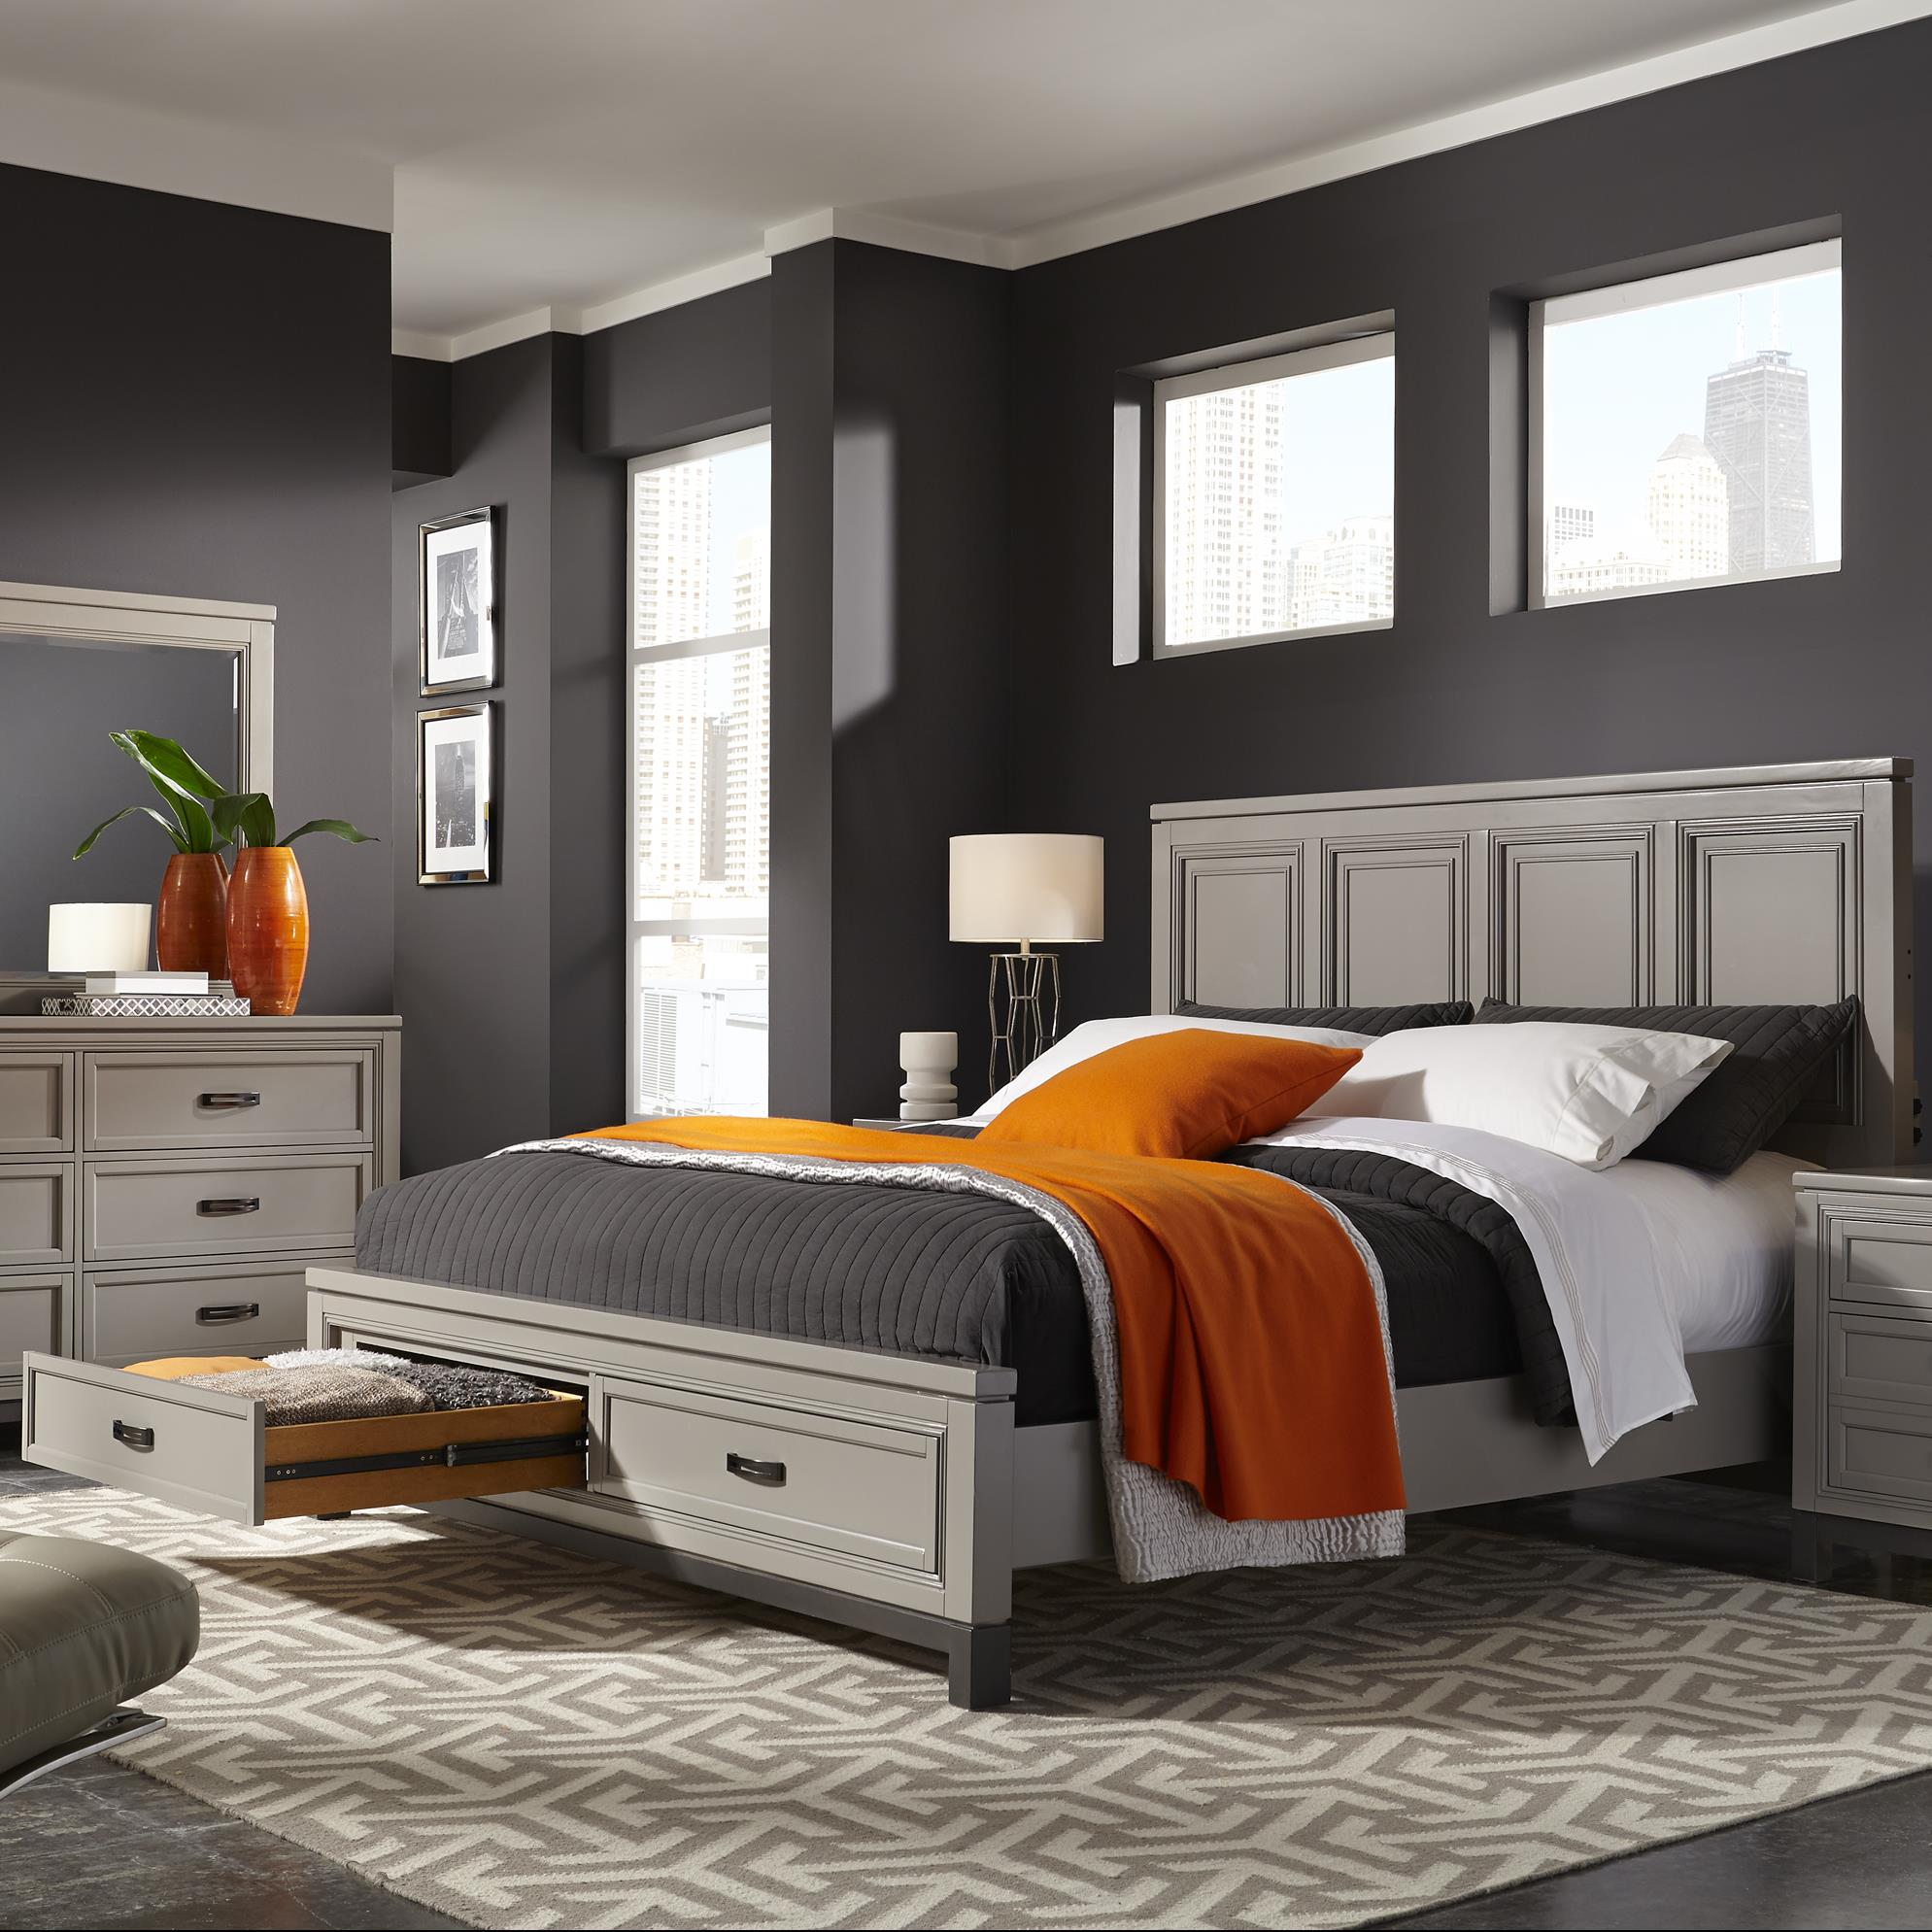 Hyde Park King Painted Panel Storage Bed by Aspenhome at Darvin Furniture